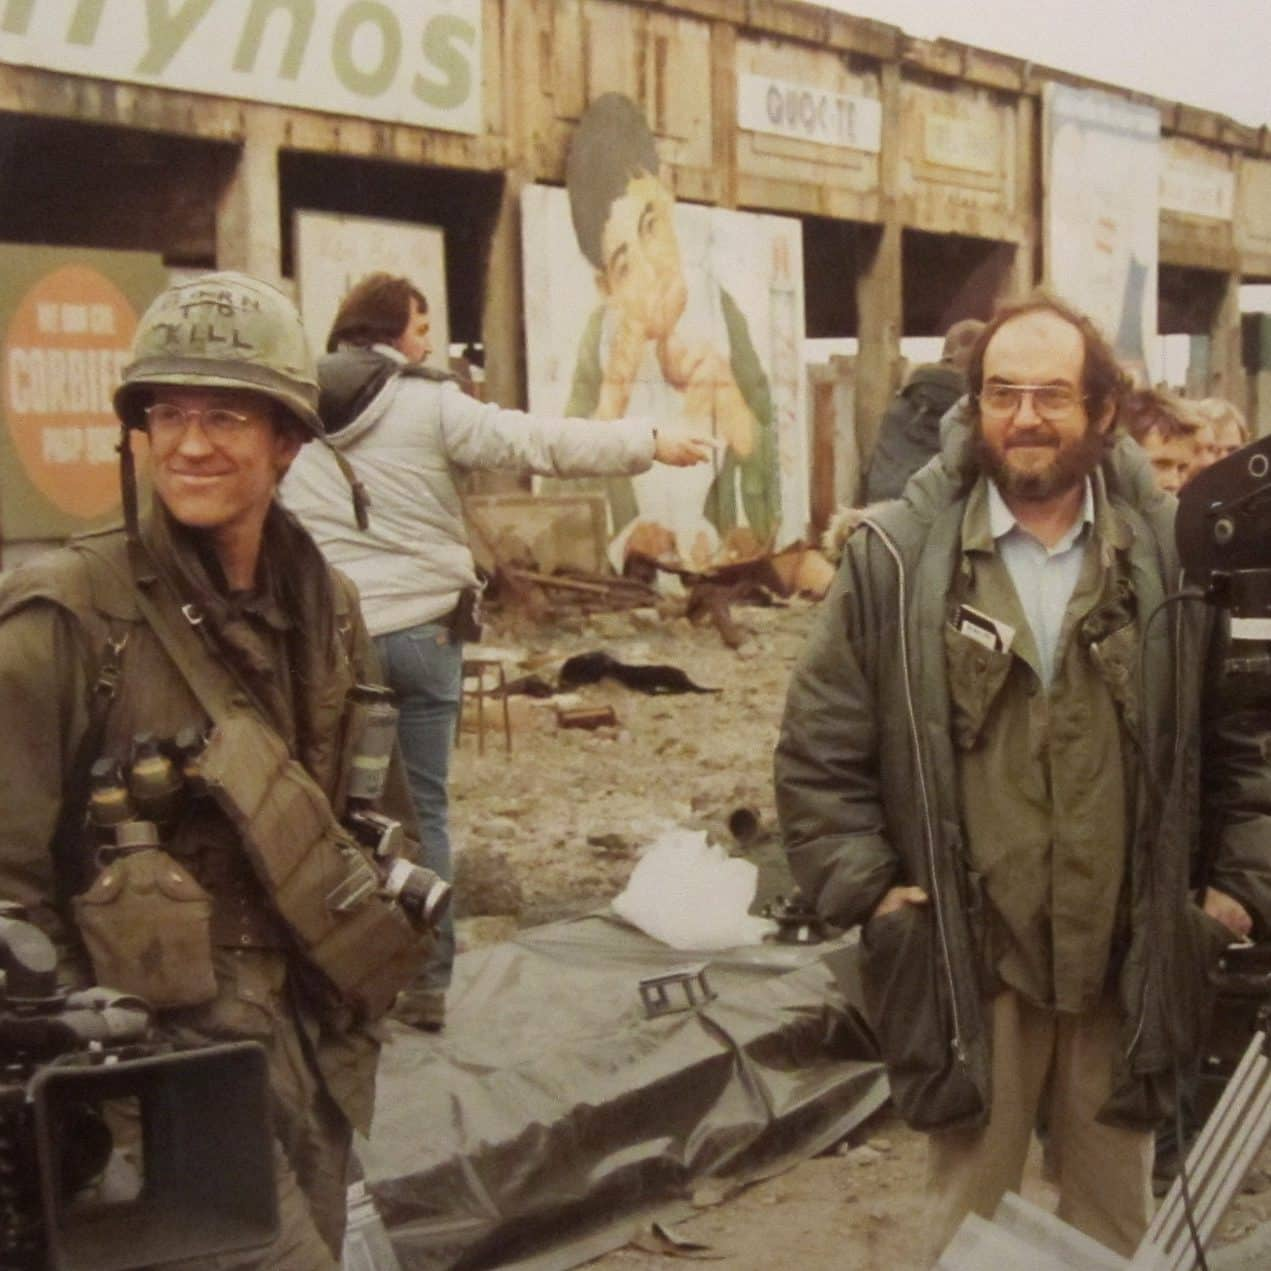 stanley kubricks full metal jacket e1573040155487 30 Things You Never Knew About Vietnam Movie Classic Full Metal Jacket